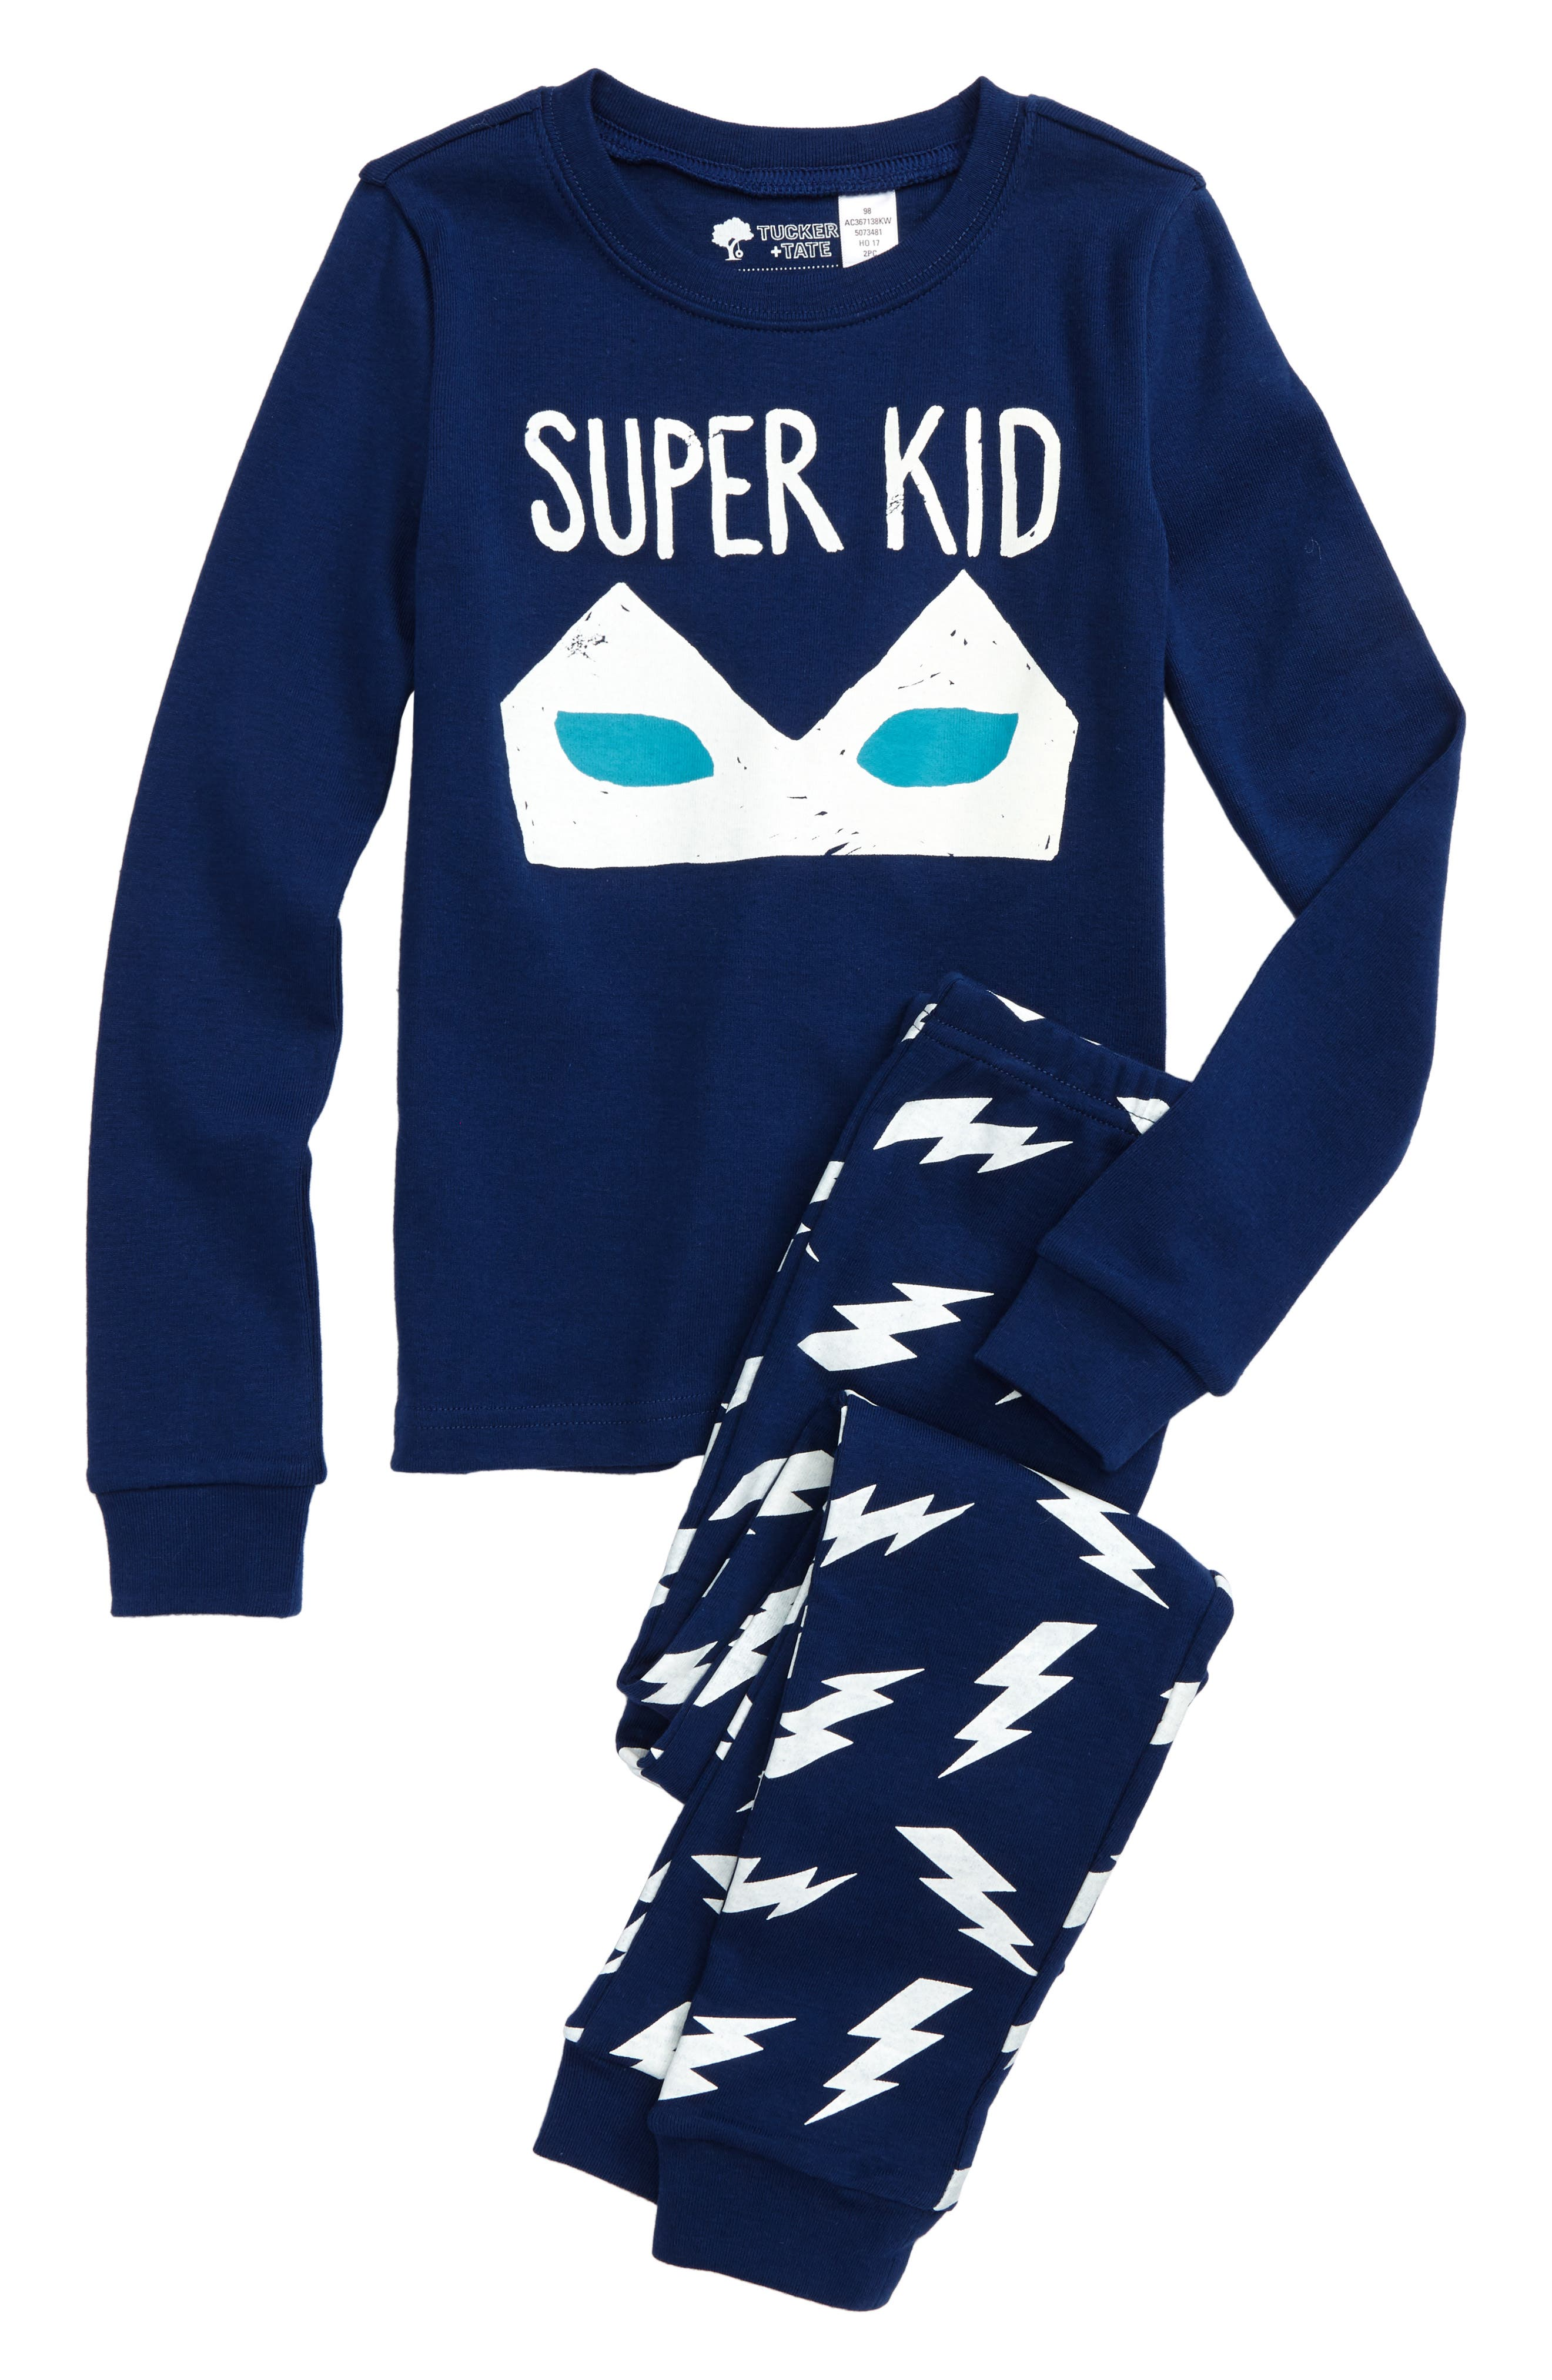 Super Kid Glow in the Dark Fitted Two-Piece Pajamas,                             Main thumbnail 1, color,